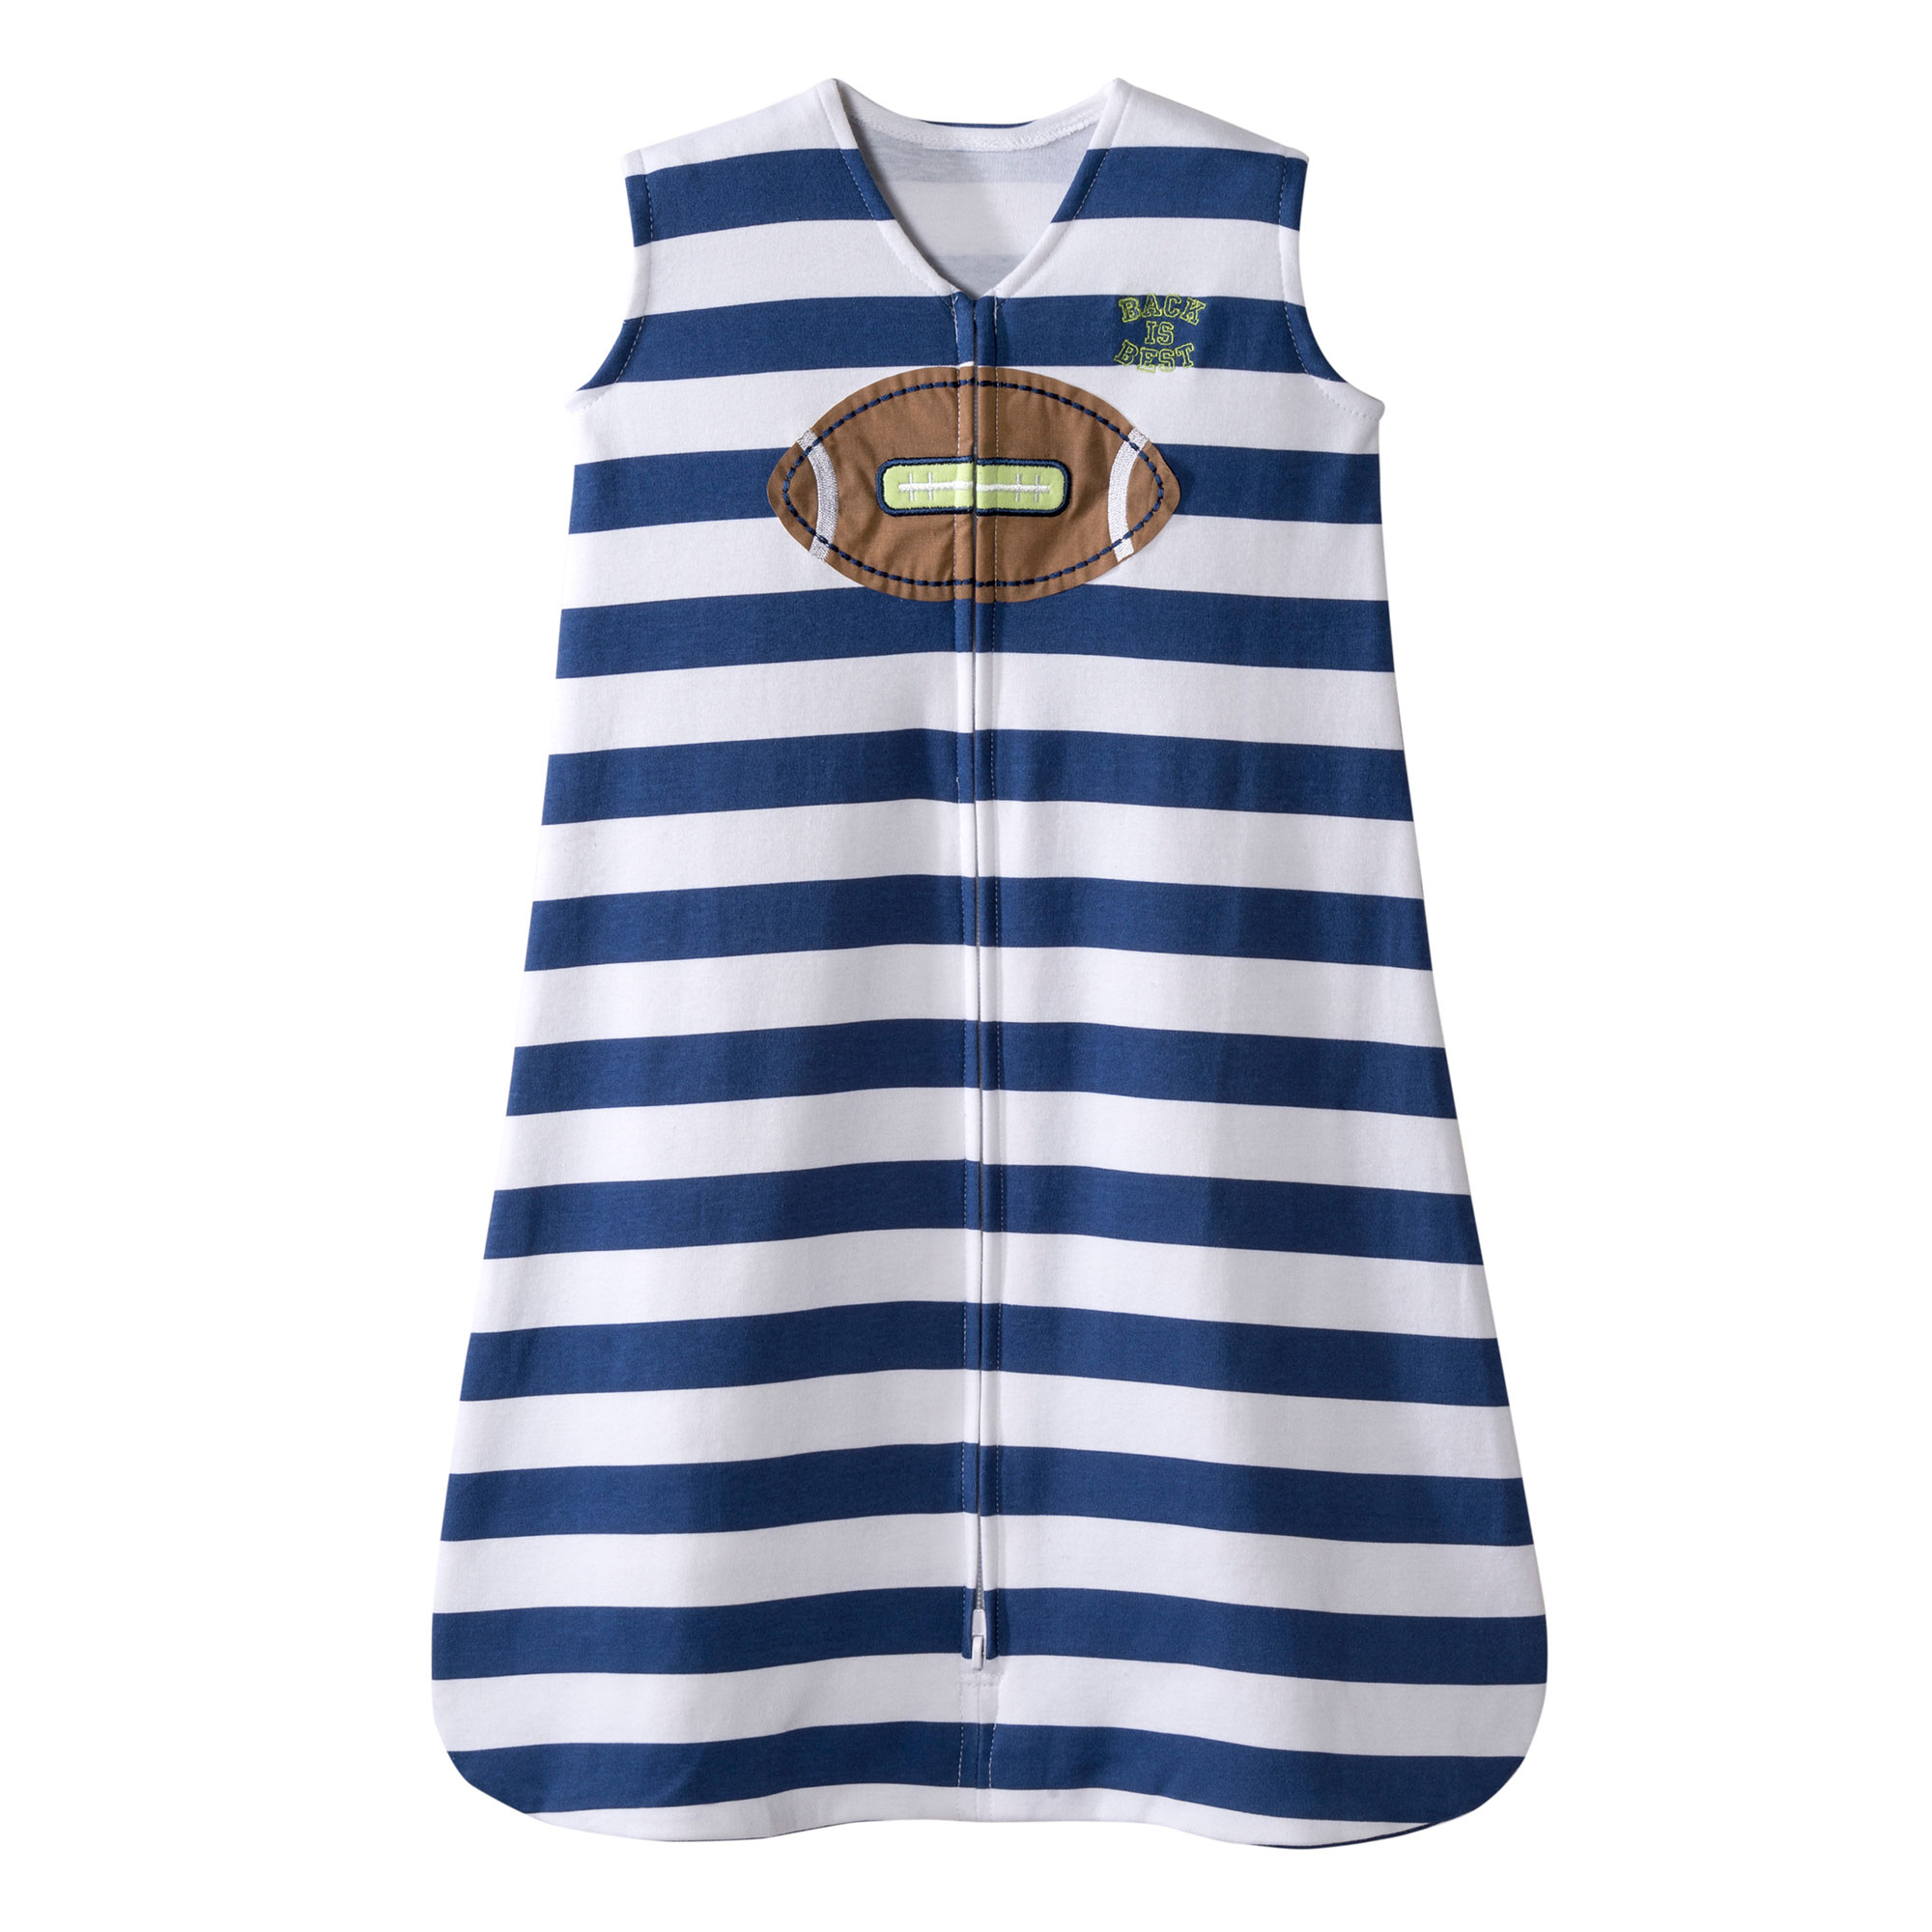 Halo Football Navy Blue Stripe Sleepsack Wearable Baby Blanket, Large